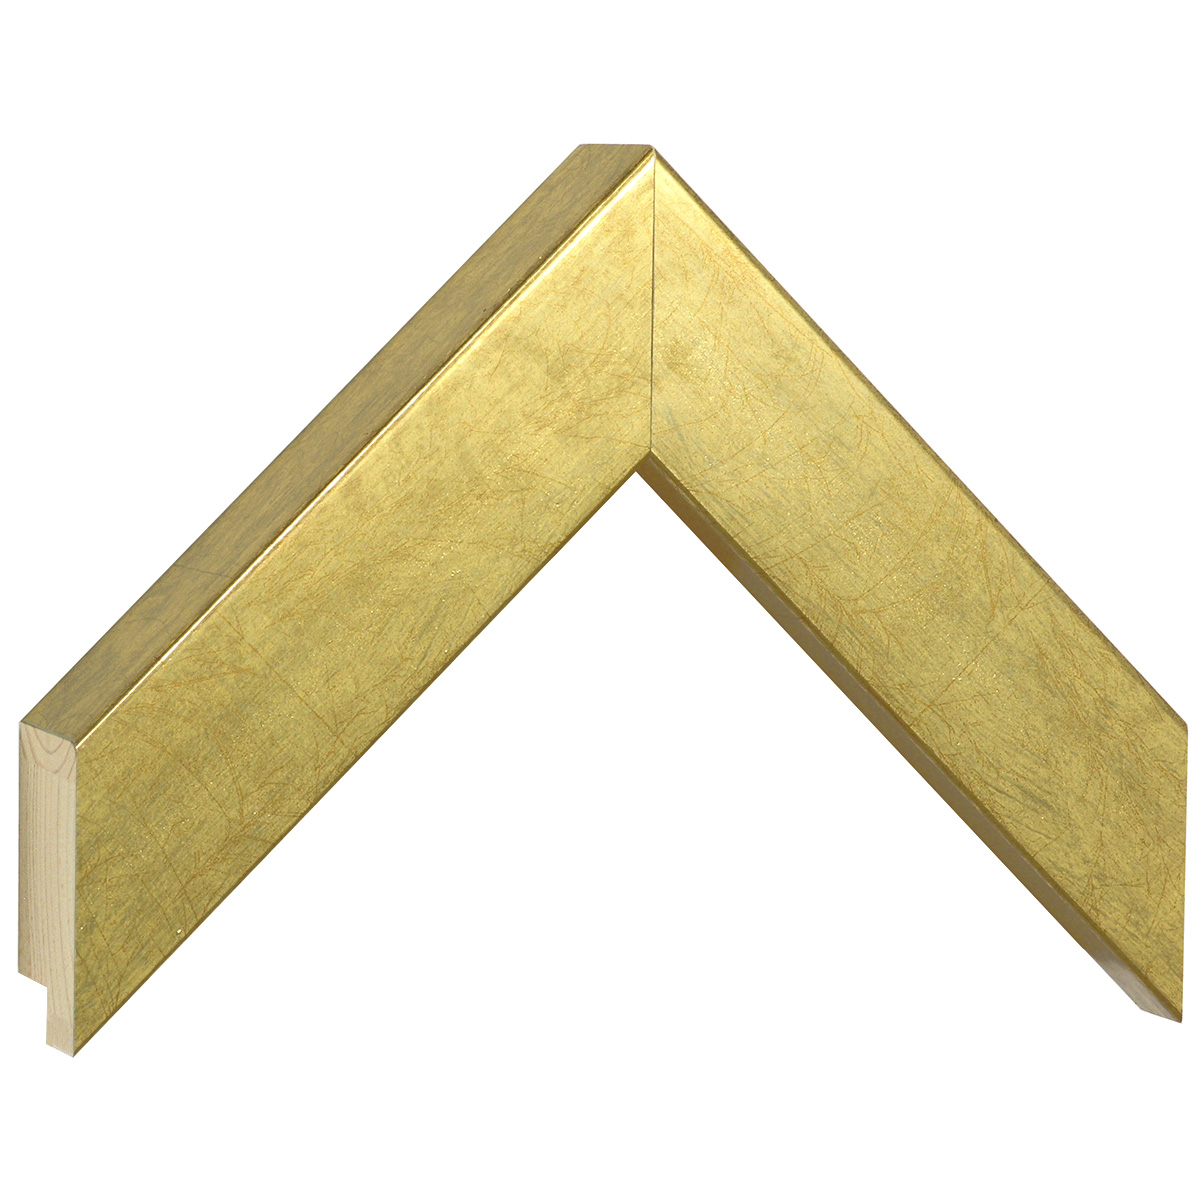 Moulding pine, width 40mm, height 45, gold